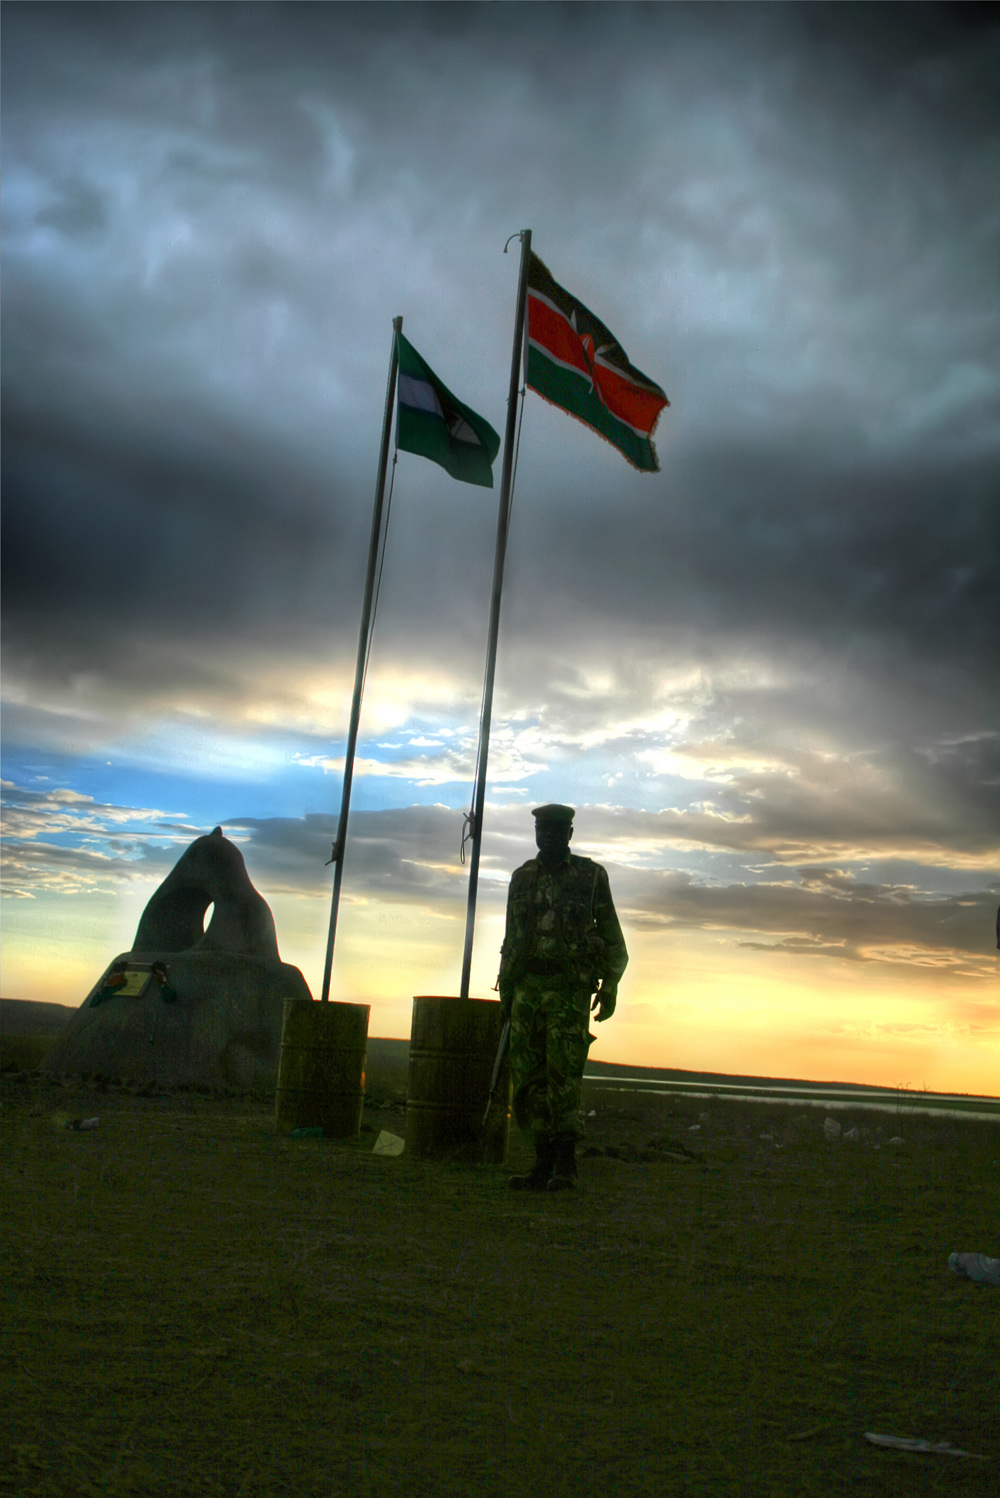 turkana eclipse_flags